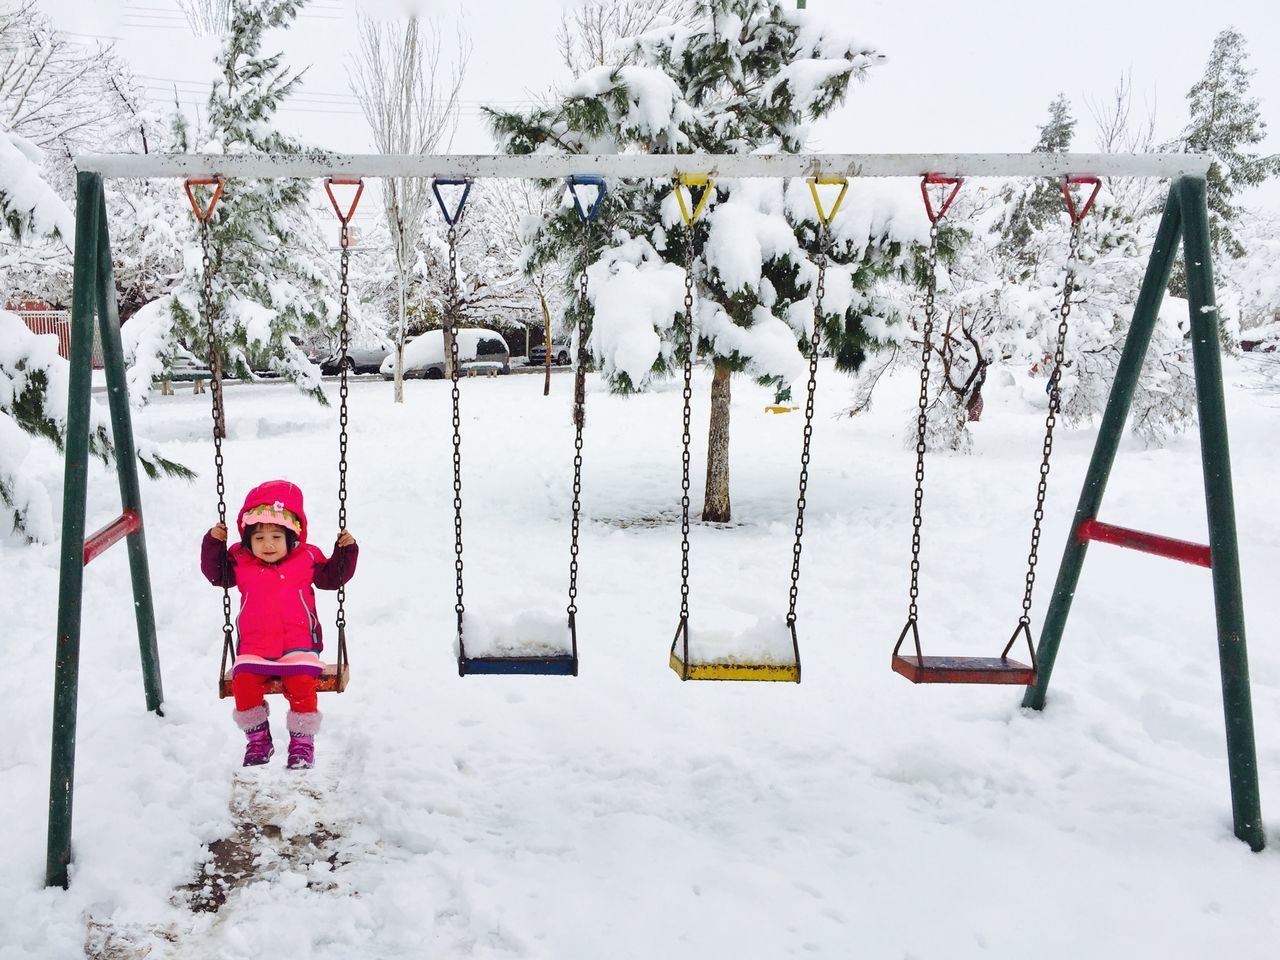 Day 356 - The Swings. - iPhone 6 - Native Camera App - Native Edit & Snapseed Apps Iphoneonly IPhoneography IPhone Juarez Mexico Ciudad Juárez Snow ❄ Swing Its Cold Outside It's Cold Outside